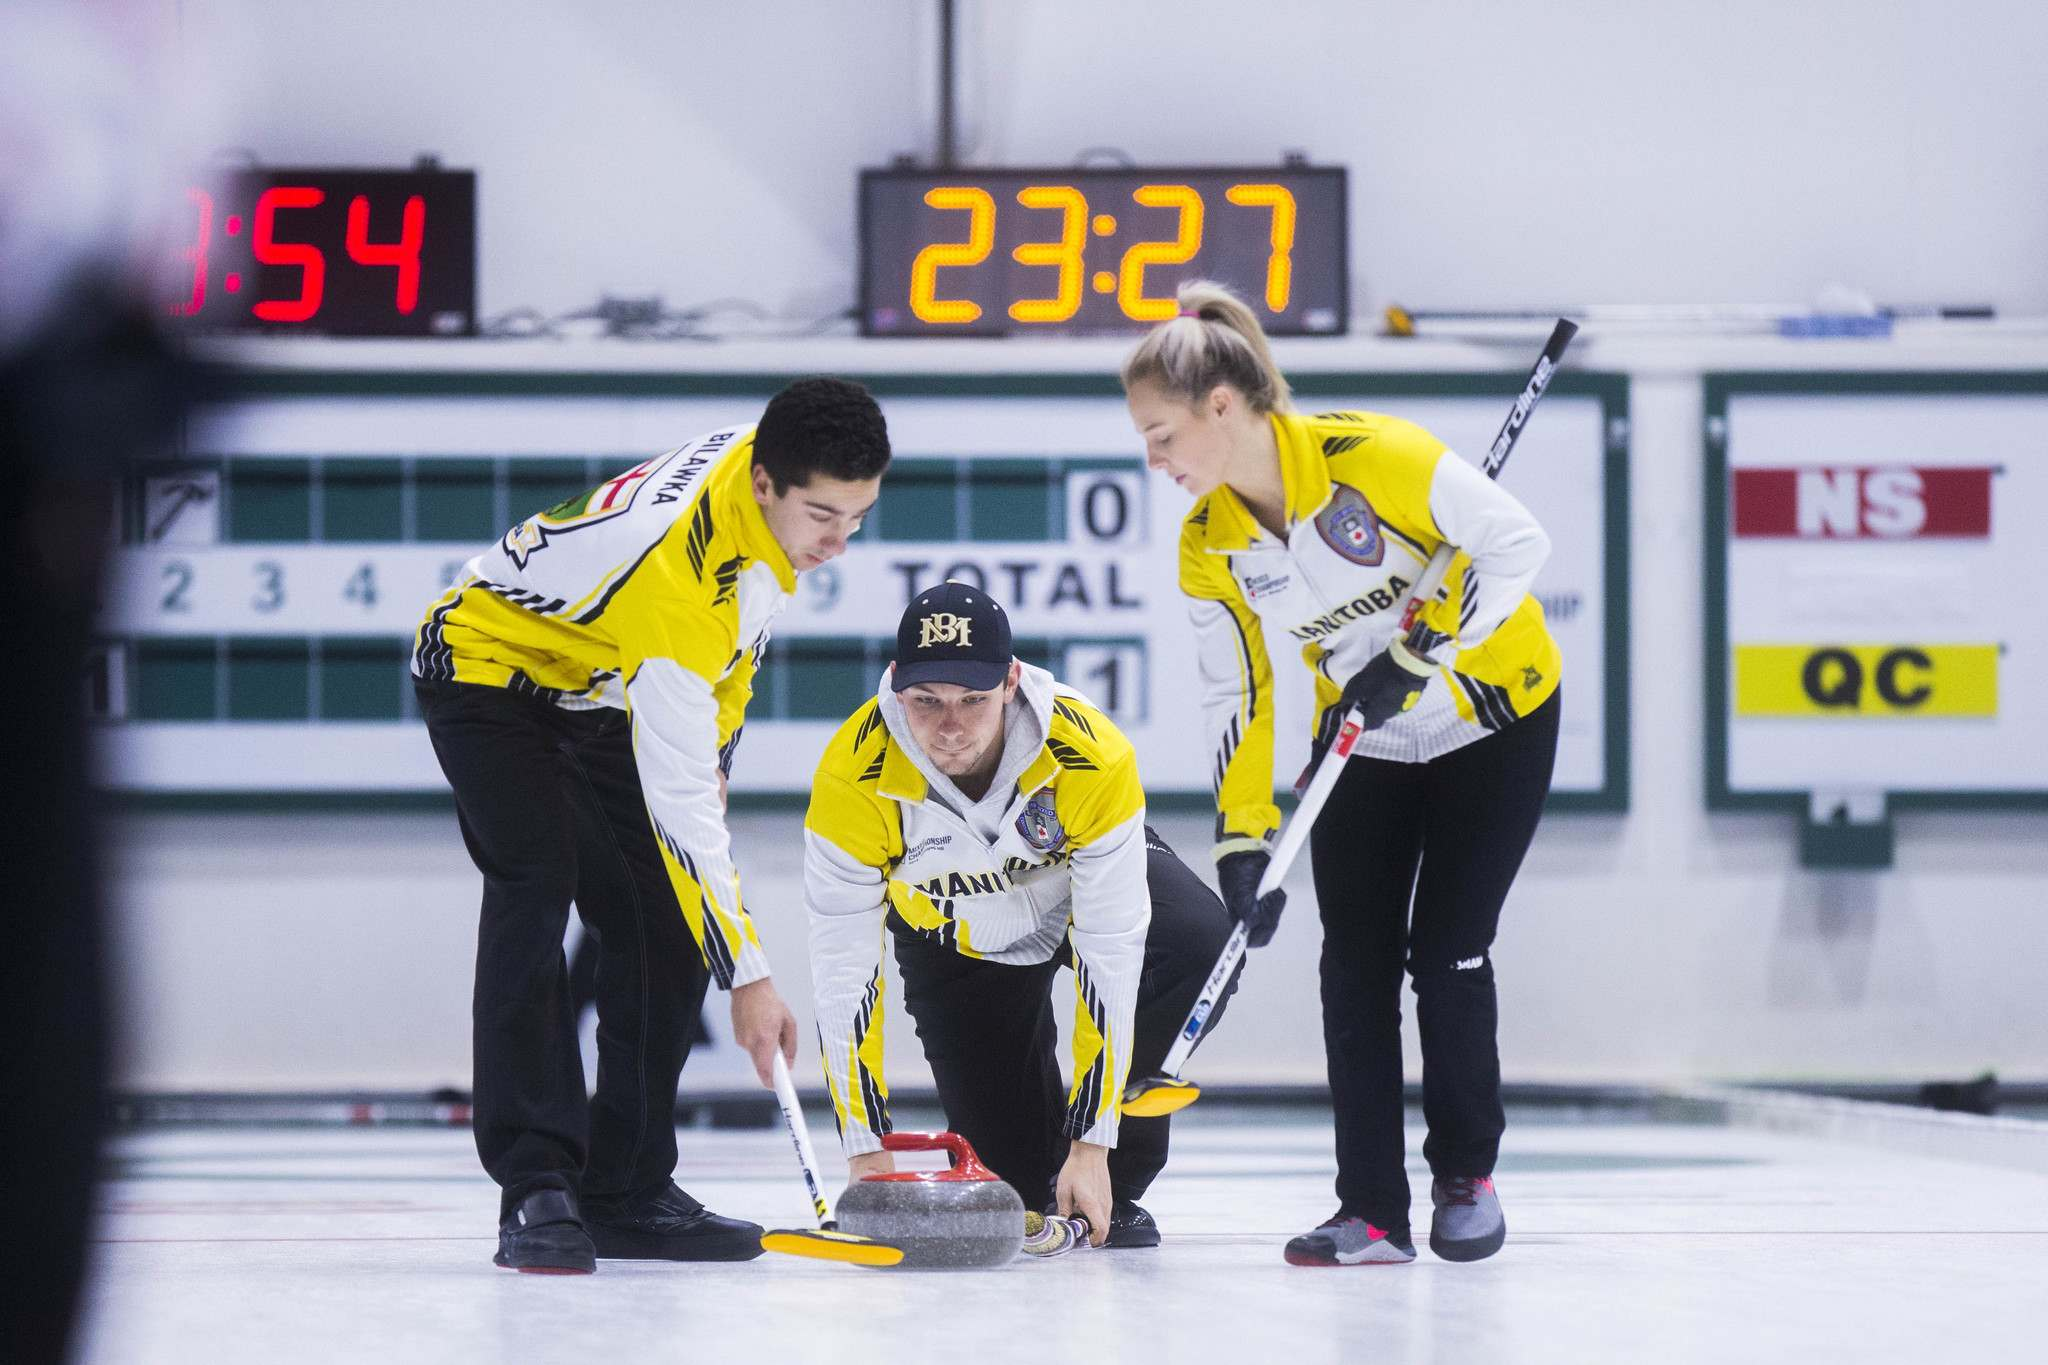 MIKAELA MACKENZIE / WINNIPEG FREE PRESS</p><p>Team Manitoba skip Colin Kurz throws in a game against Ontario at the Fort Rouge Curling Club in Winnipeg on Friday. The Manitoba rink has a spot in the final four this weekend.</p>